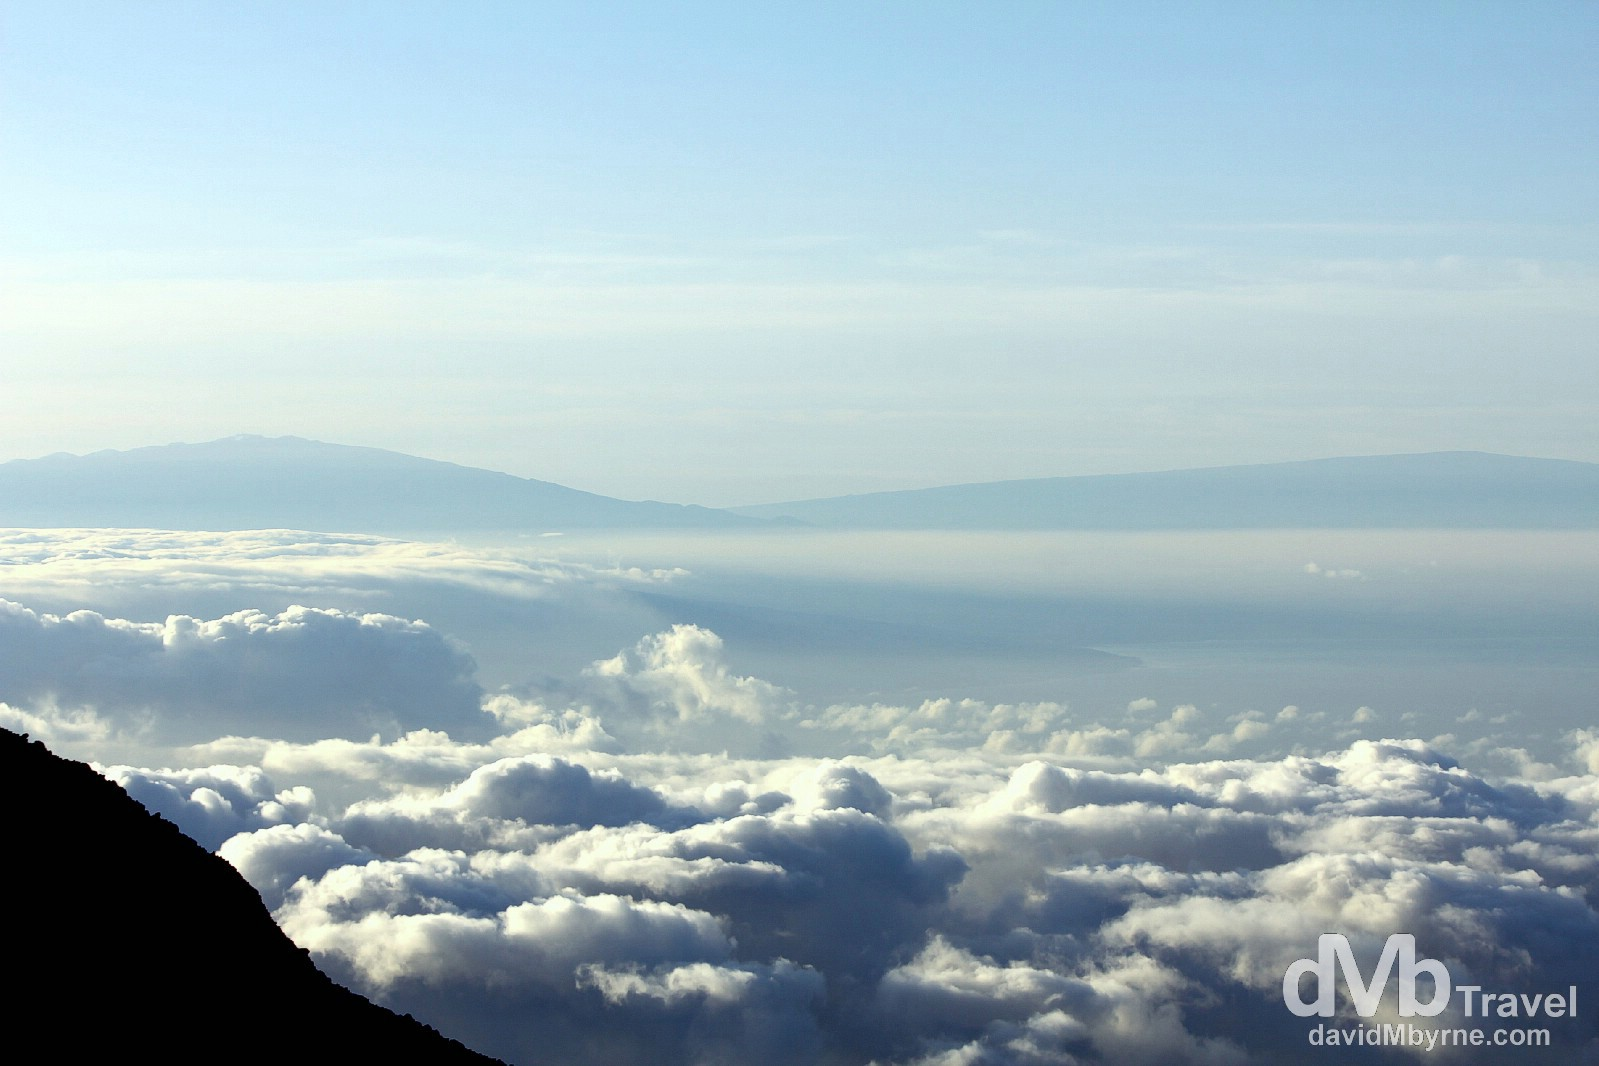 For me the sunrise from Haleakala was secondary to the amazing views, not only of the clouds hovering above Maui (& far below me) but also of the distant peaks of Mauna Kea (one the left) & Mauna Loa (on the right) on the Big Island, 100m/160km & 80m/128km &amp away respectively - it was especially gratifying peering across at Mauna Kea, having stood on its snowy, 13,796ft/4,205m summit a few days earlier. Haleakala National Park, Maui, Hawaii. March 6th 2013.